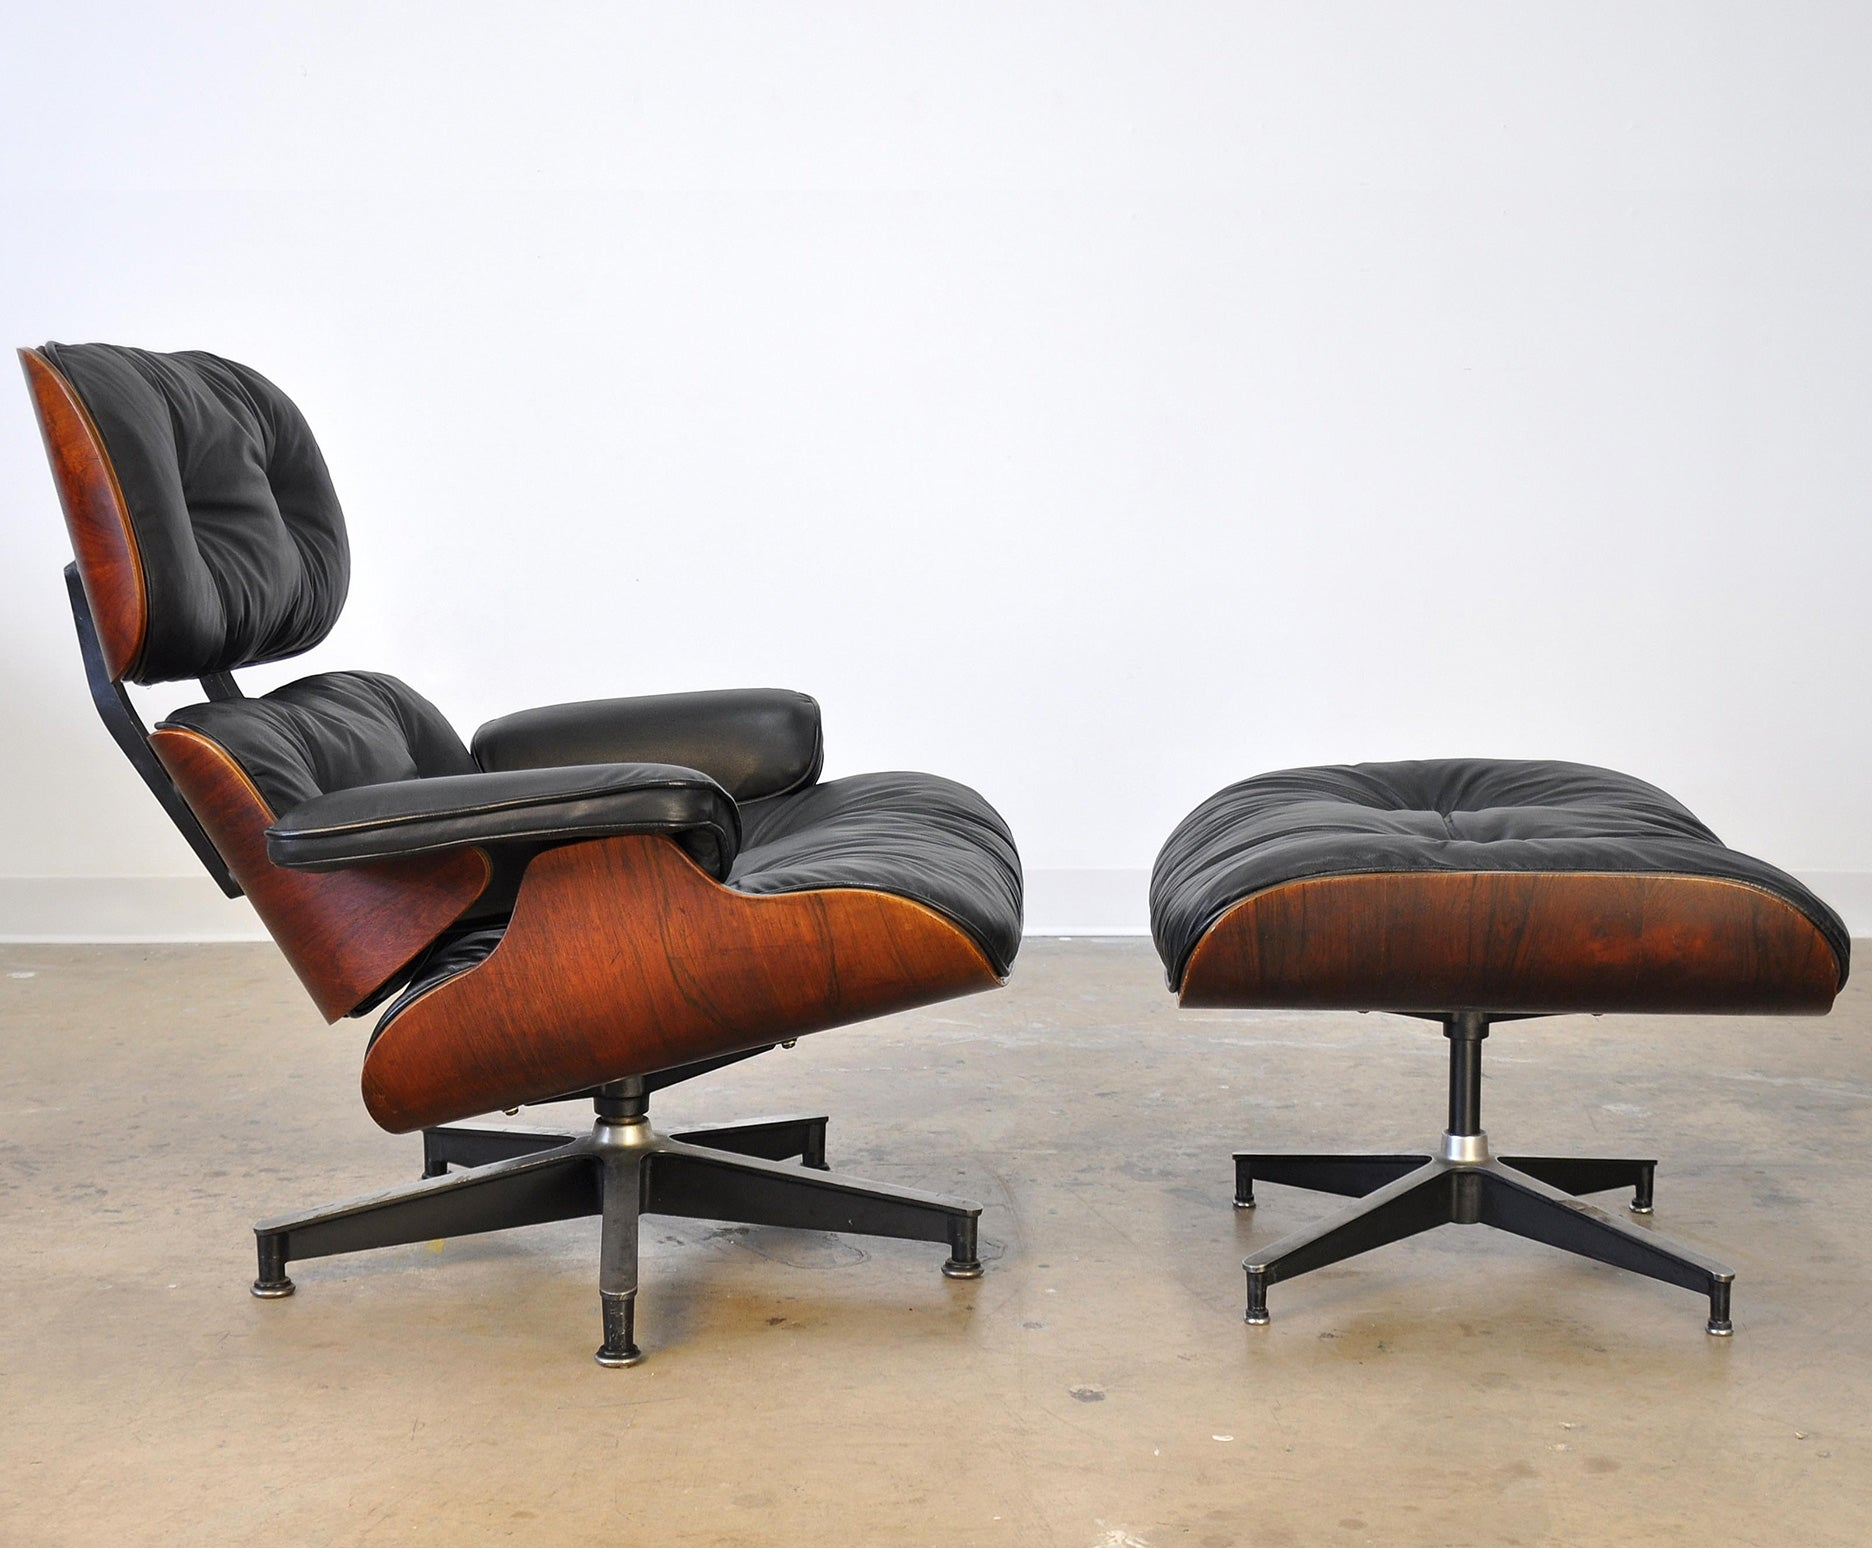 Chair Eames Charles And Ray Eames Eames Lounge Chair And Ottoman | 1stdibs